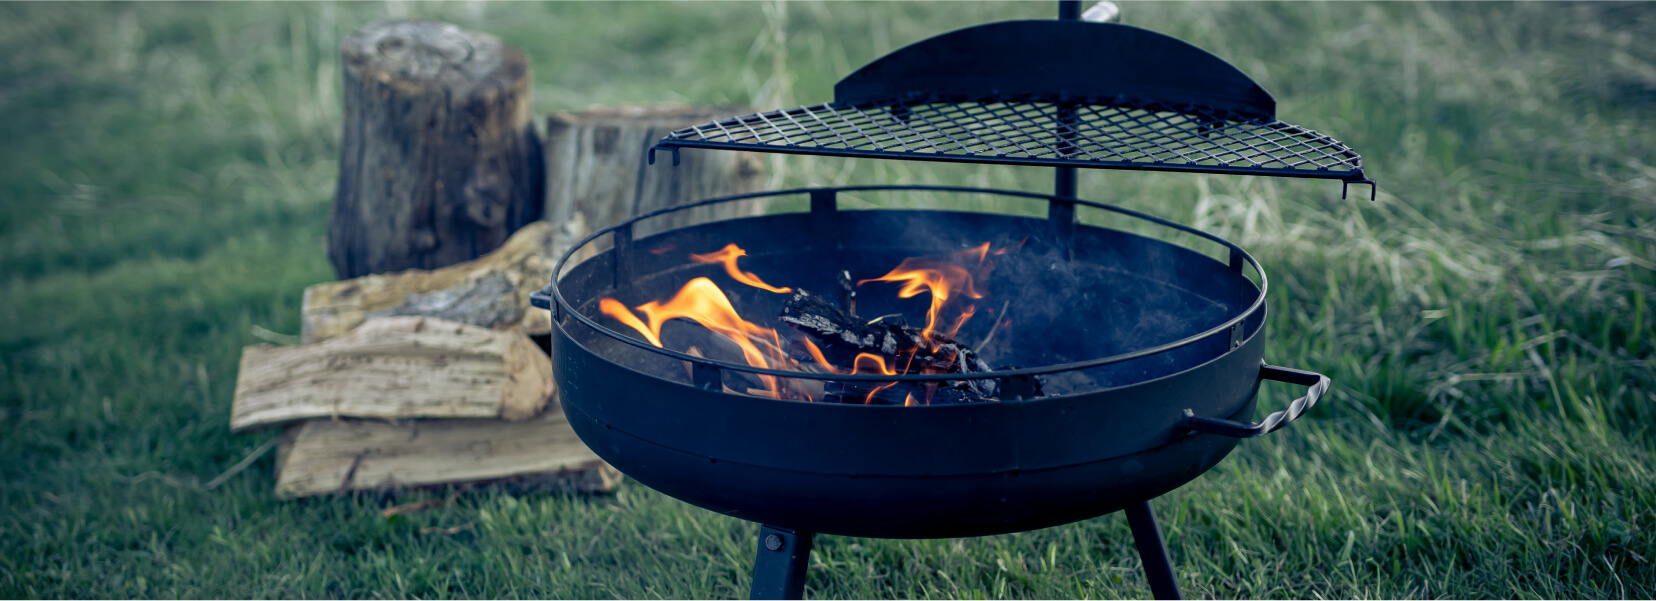 Barebones Living portable occurrence  pit and grill